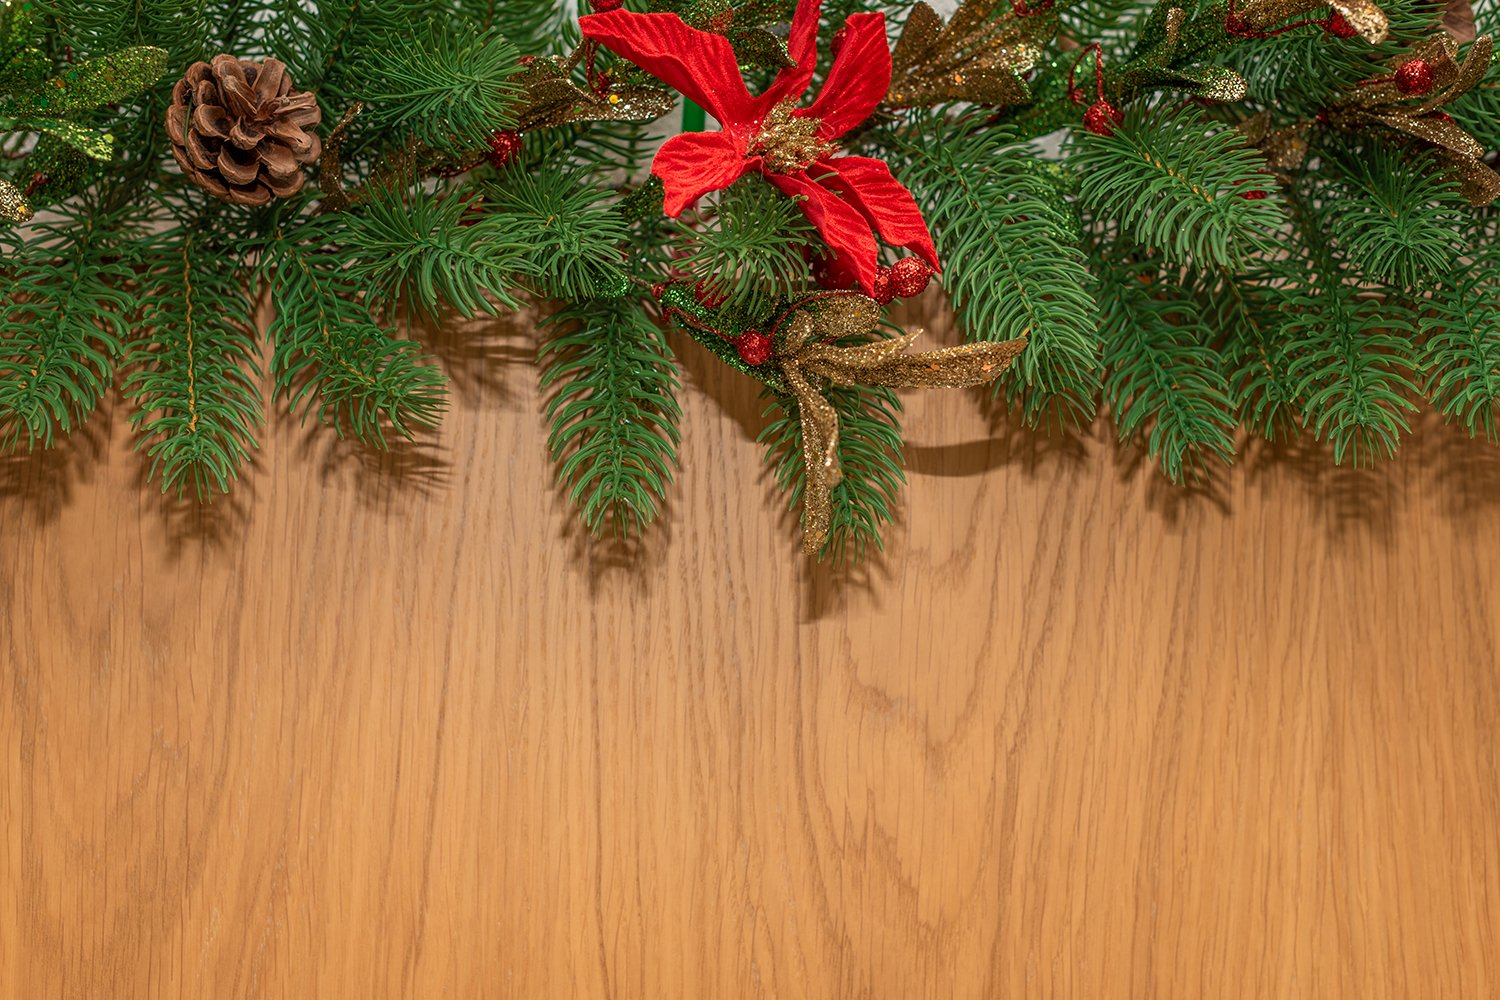 Christmas background with fir branches and Xmas decorations example image 1